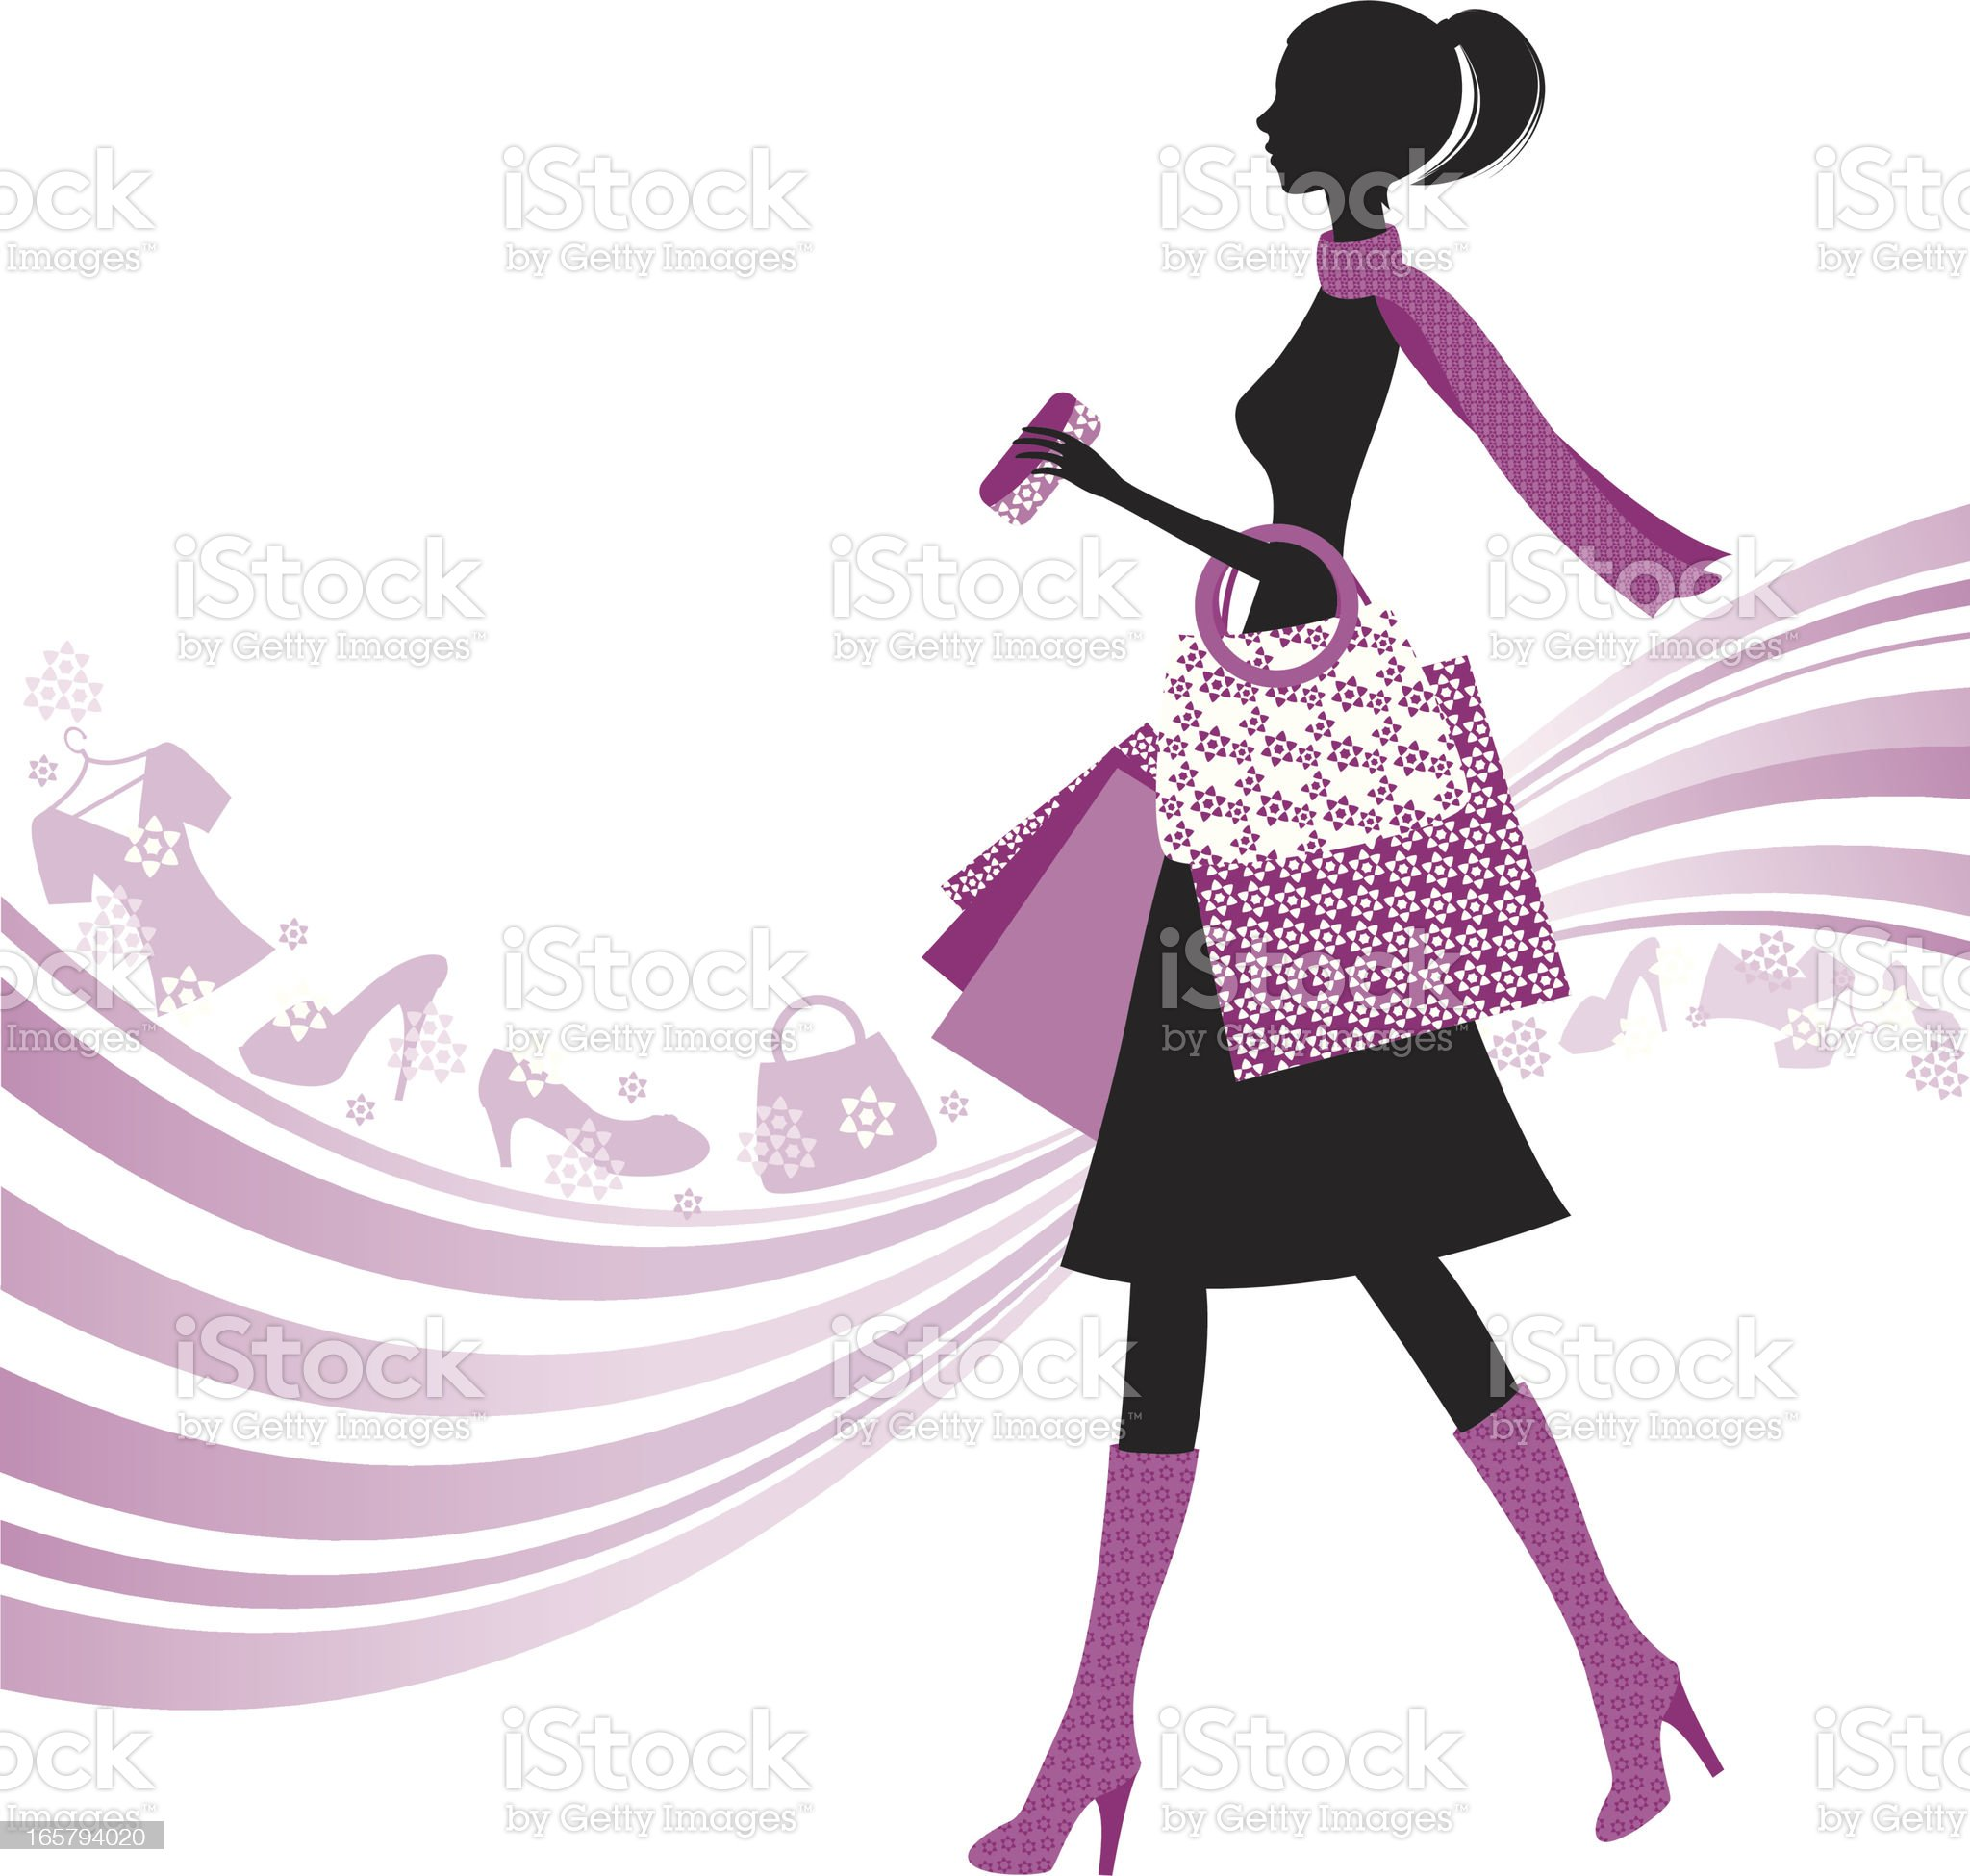 Woman Silhouette Shopping royalty-free stock vector art